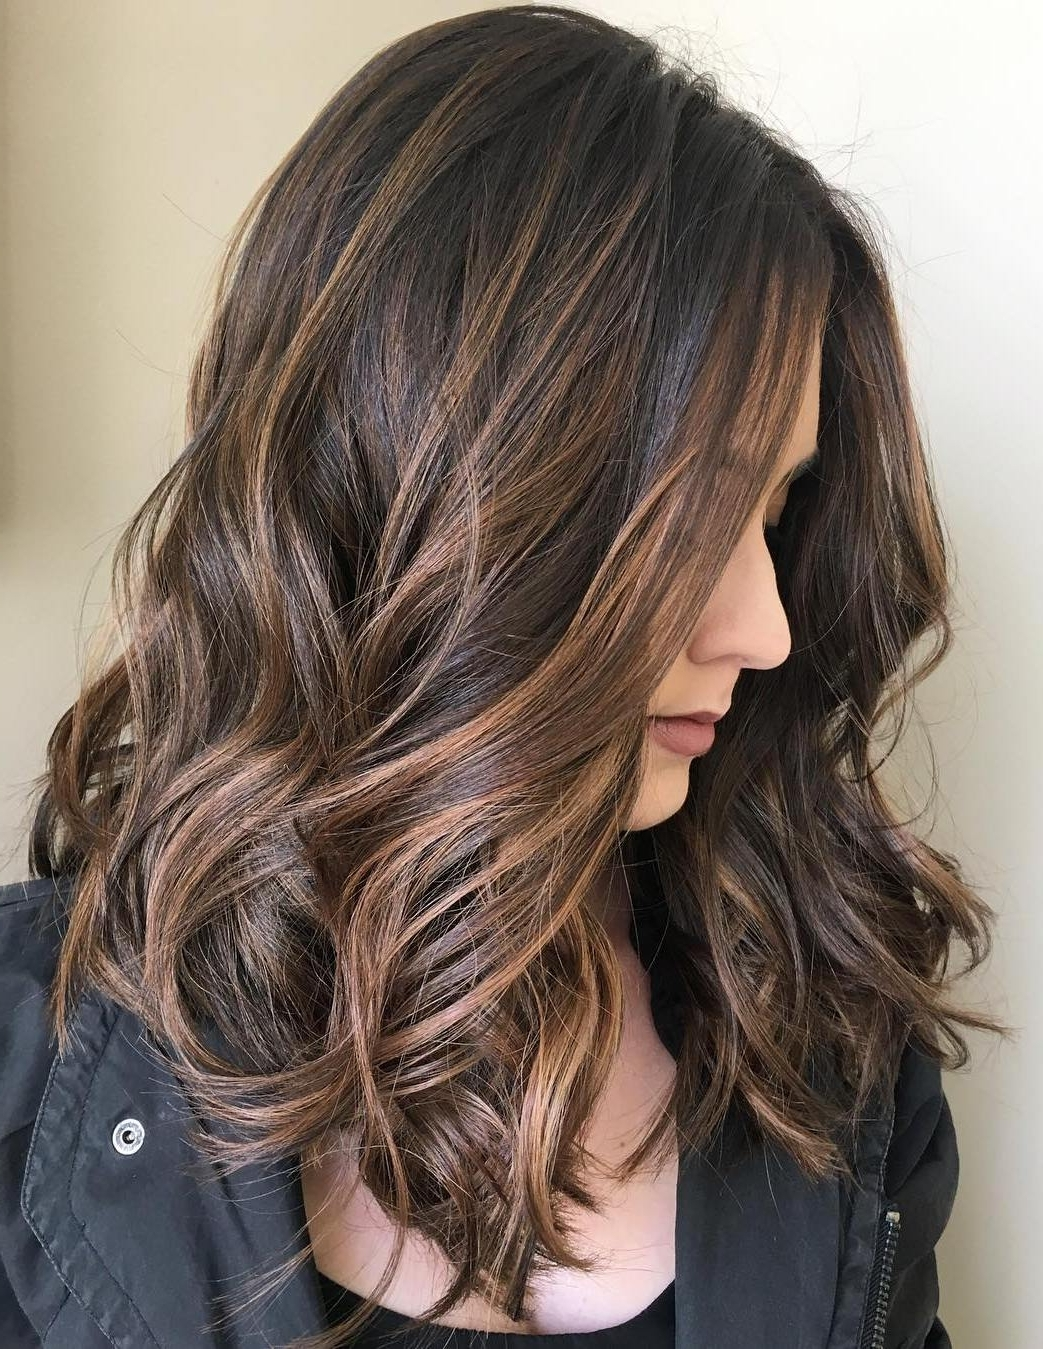 Recent No Fuss Dirty Blonde Hairstyles With Regard To 70 Balayage Hair Color Ideas With Blonde, Brown And Caramel Highlights (Gallery 20 of 20)